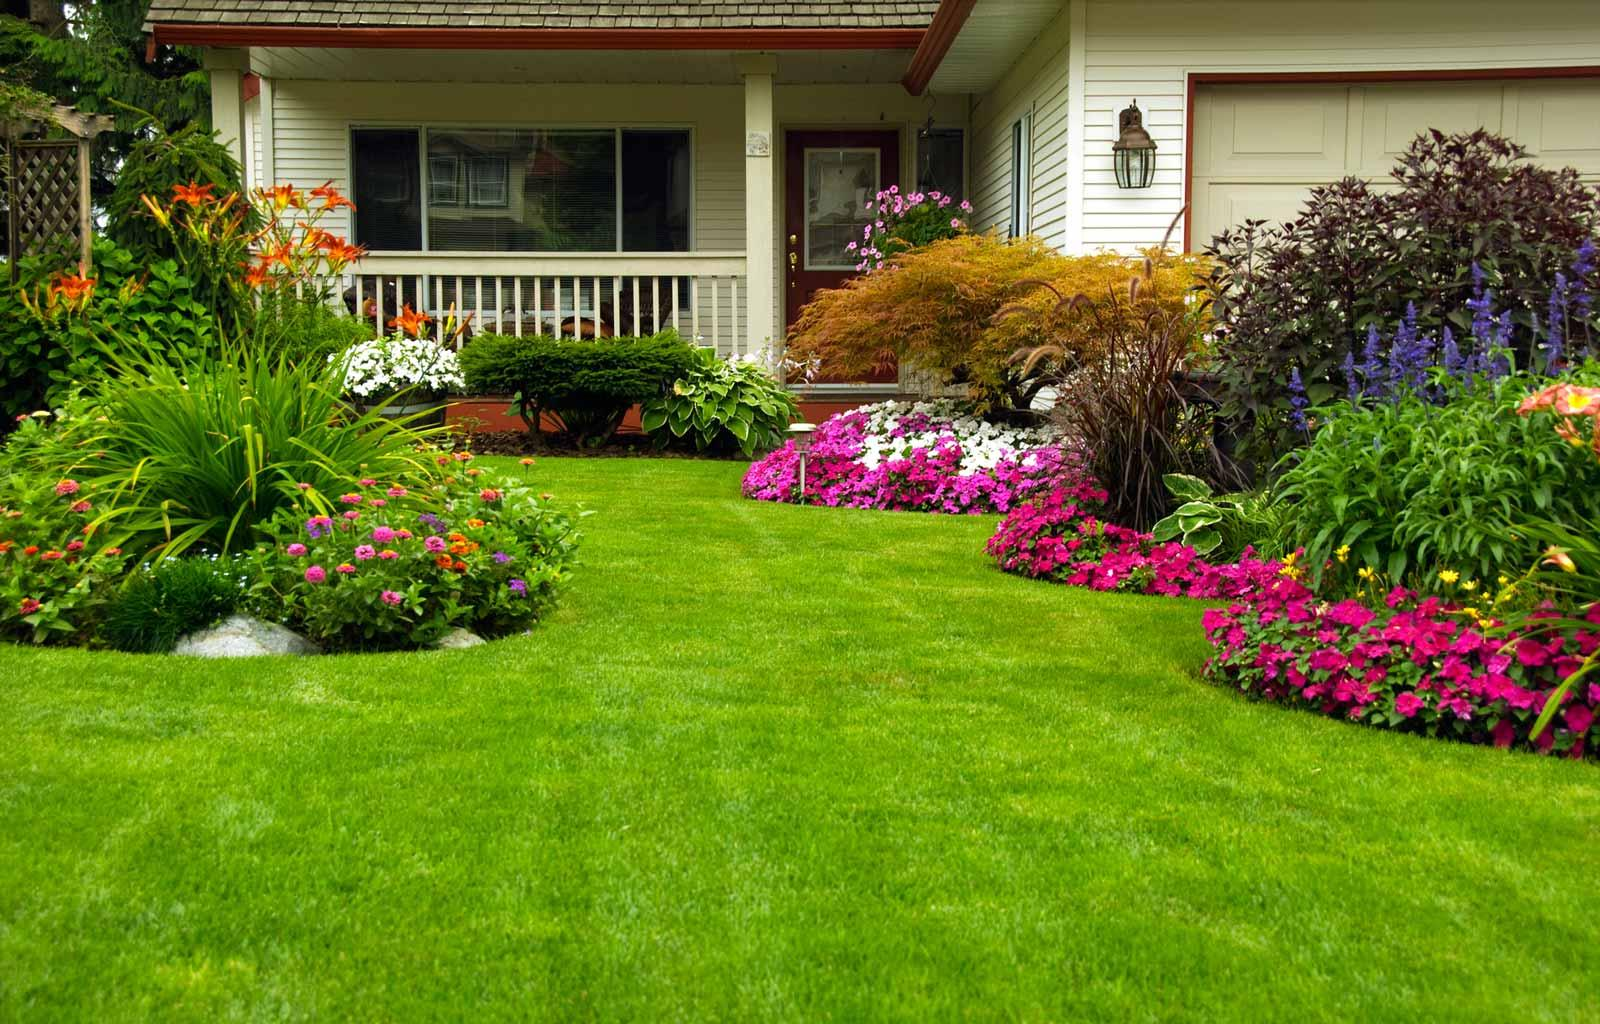 Home and Garden Supply